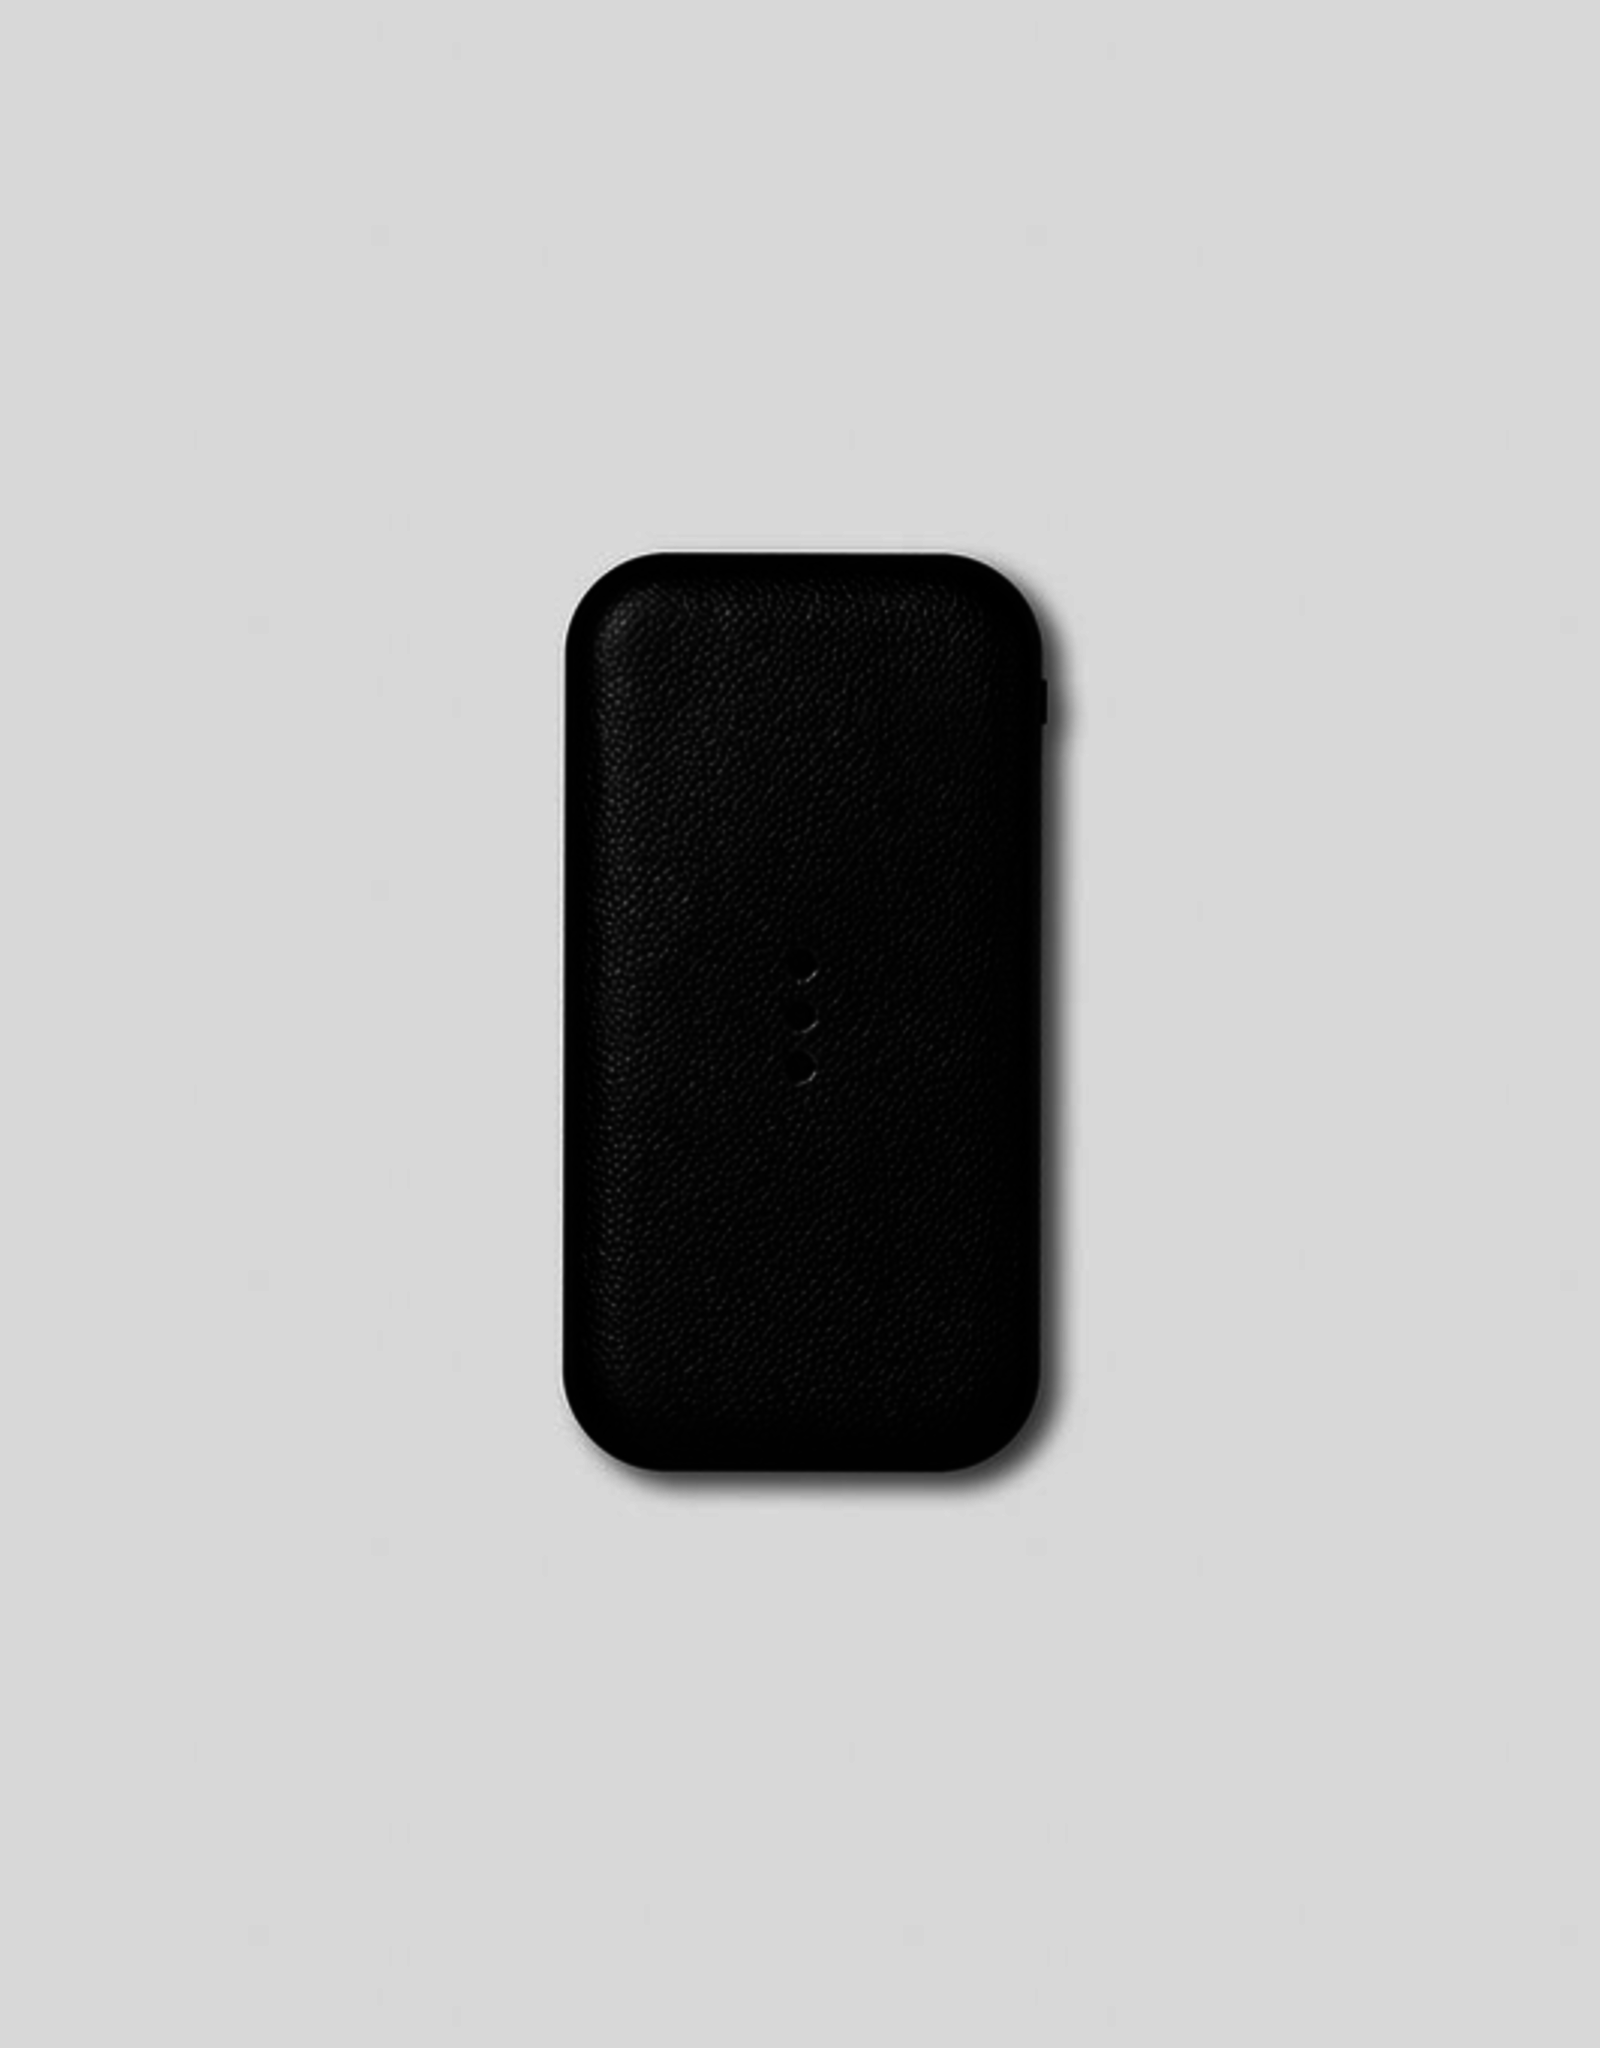 Portable Wireless Charger, Carry:1, Black